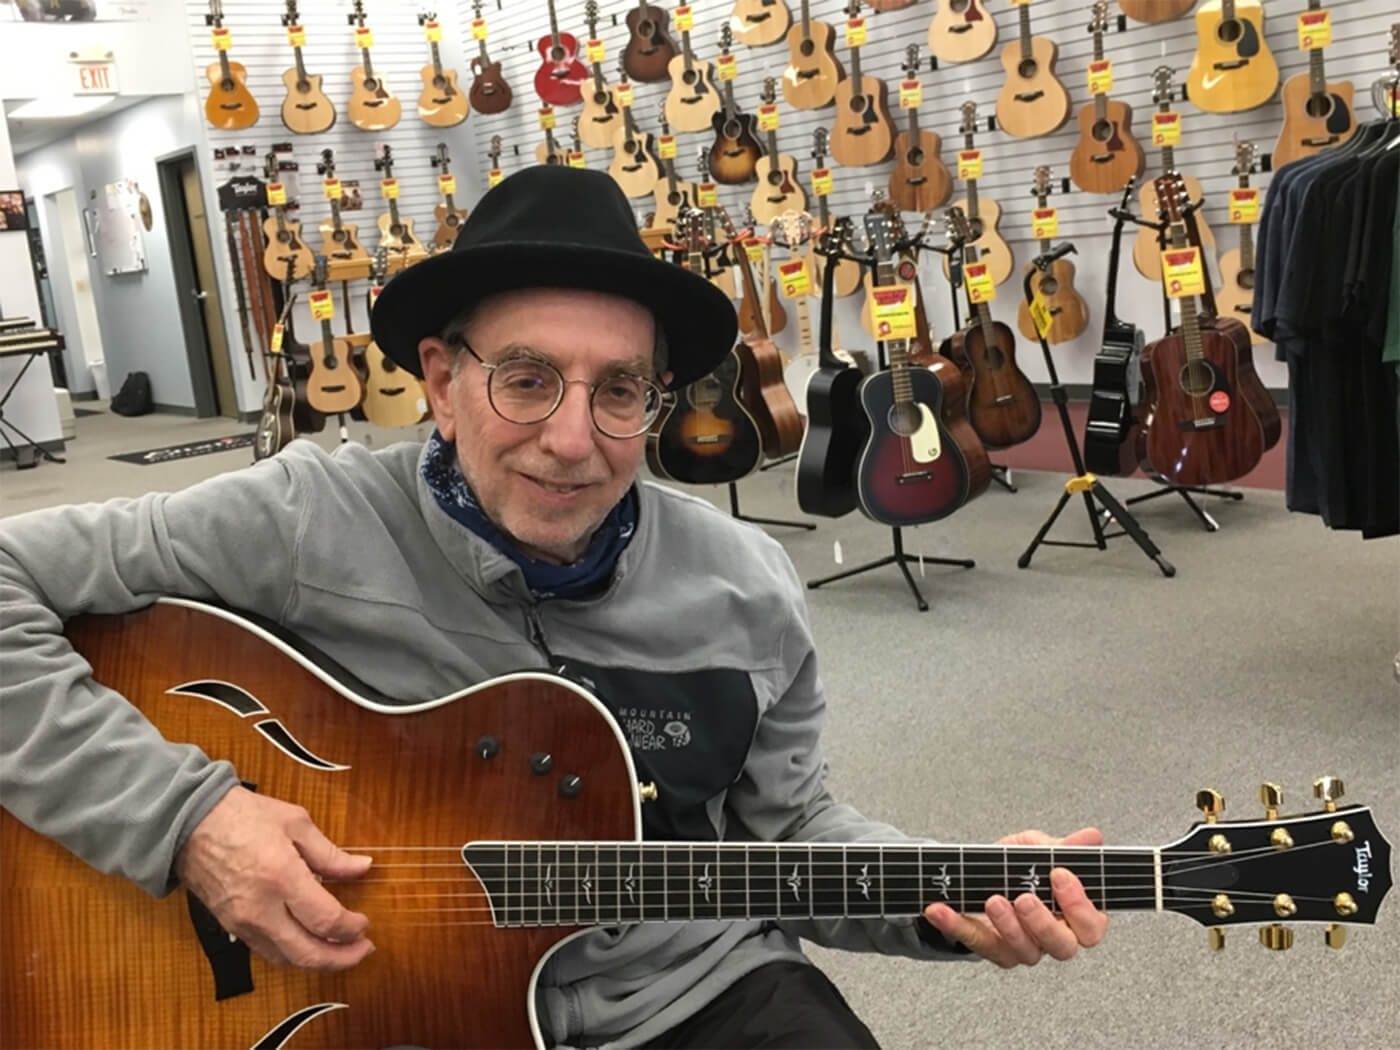 Mitchell Strauss playing guitar in shop